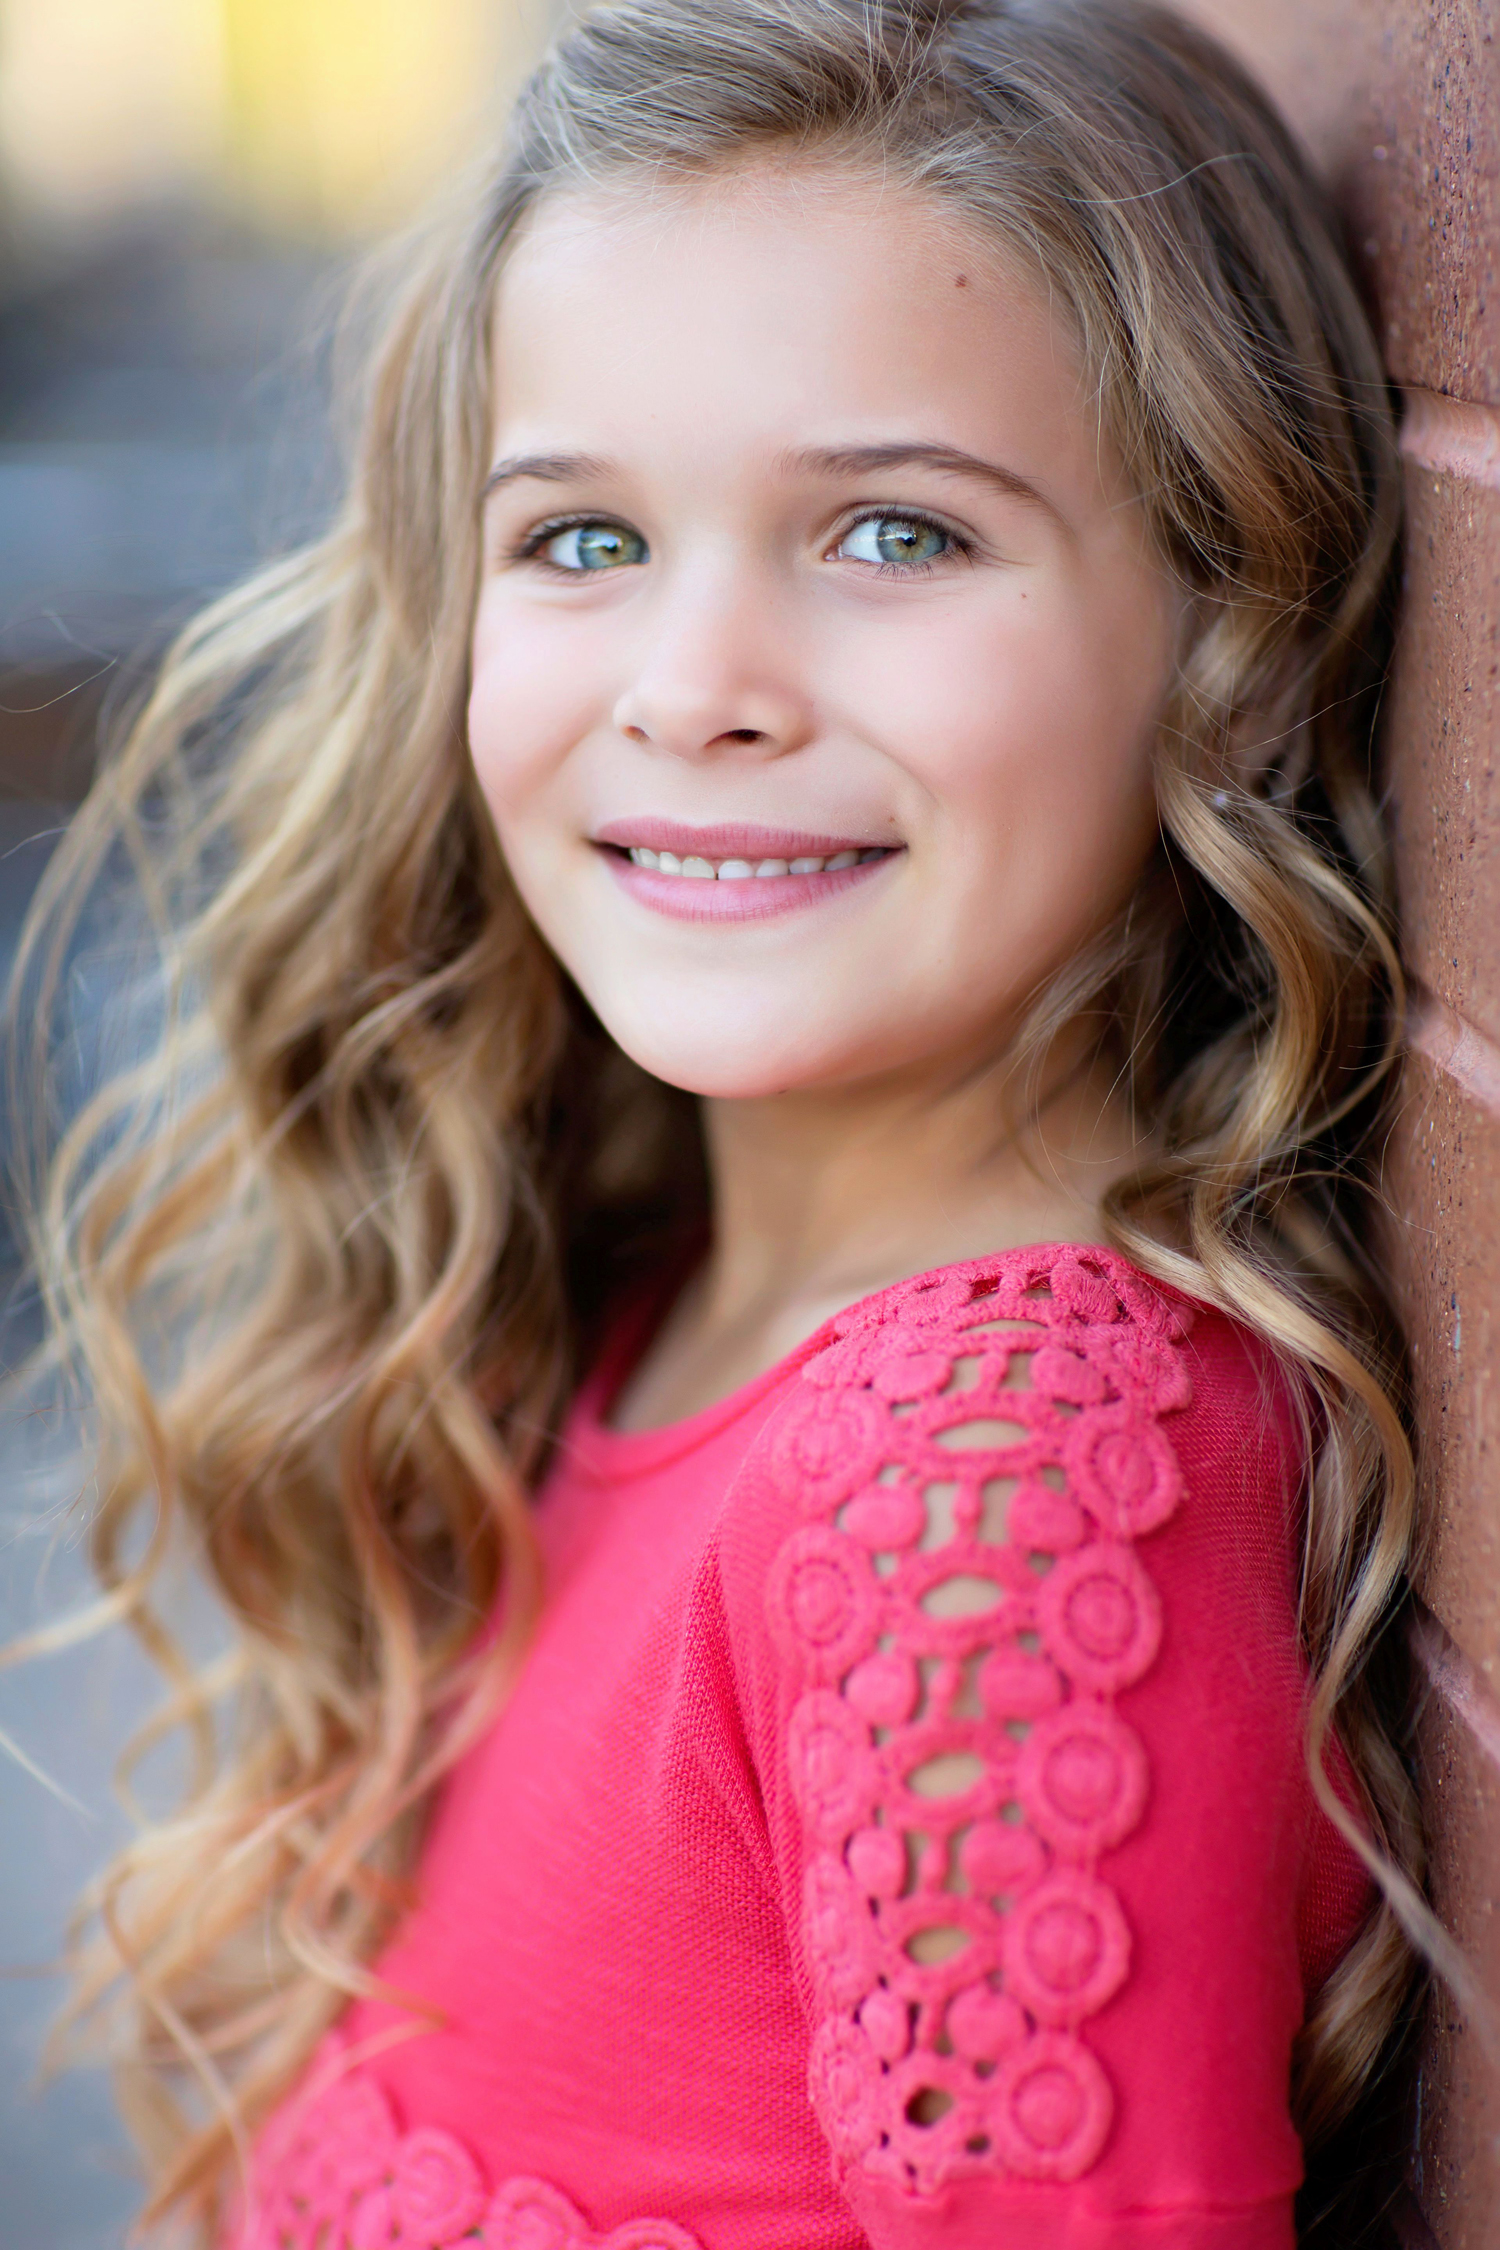 aubrey-imta-talent-pb-photo